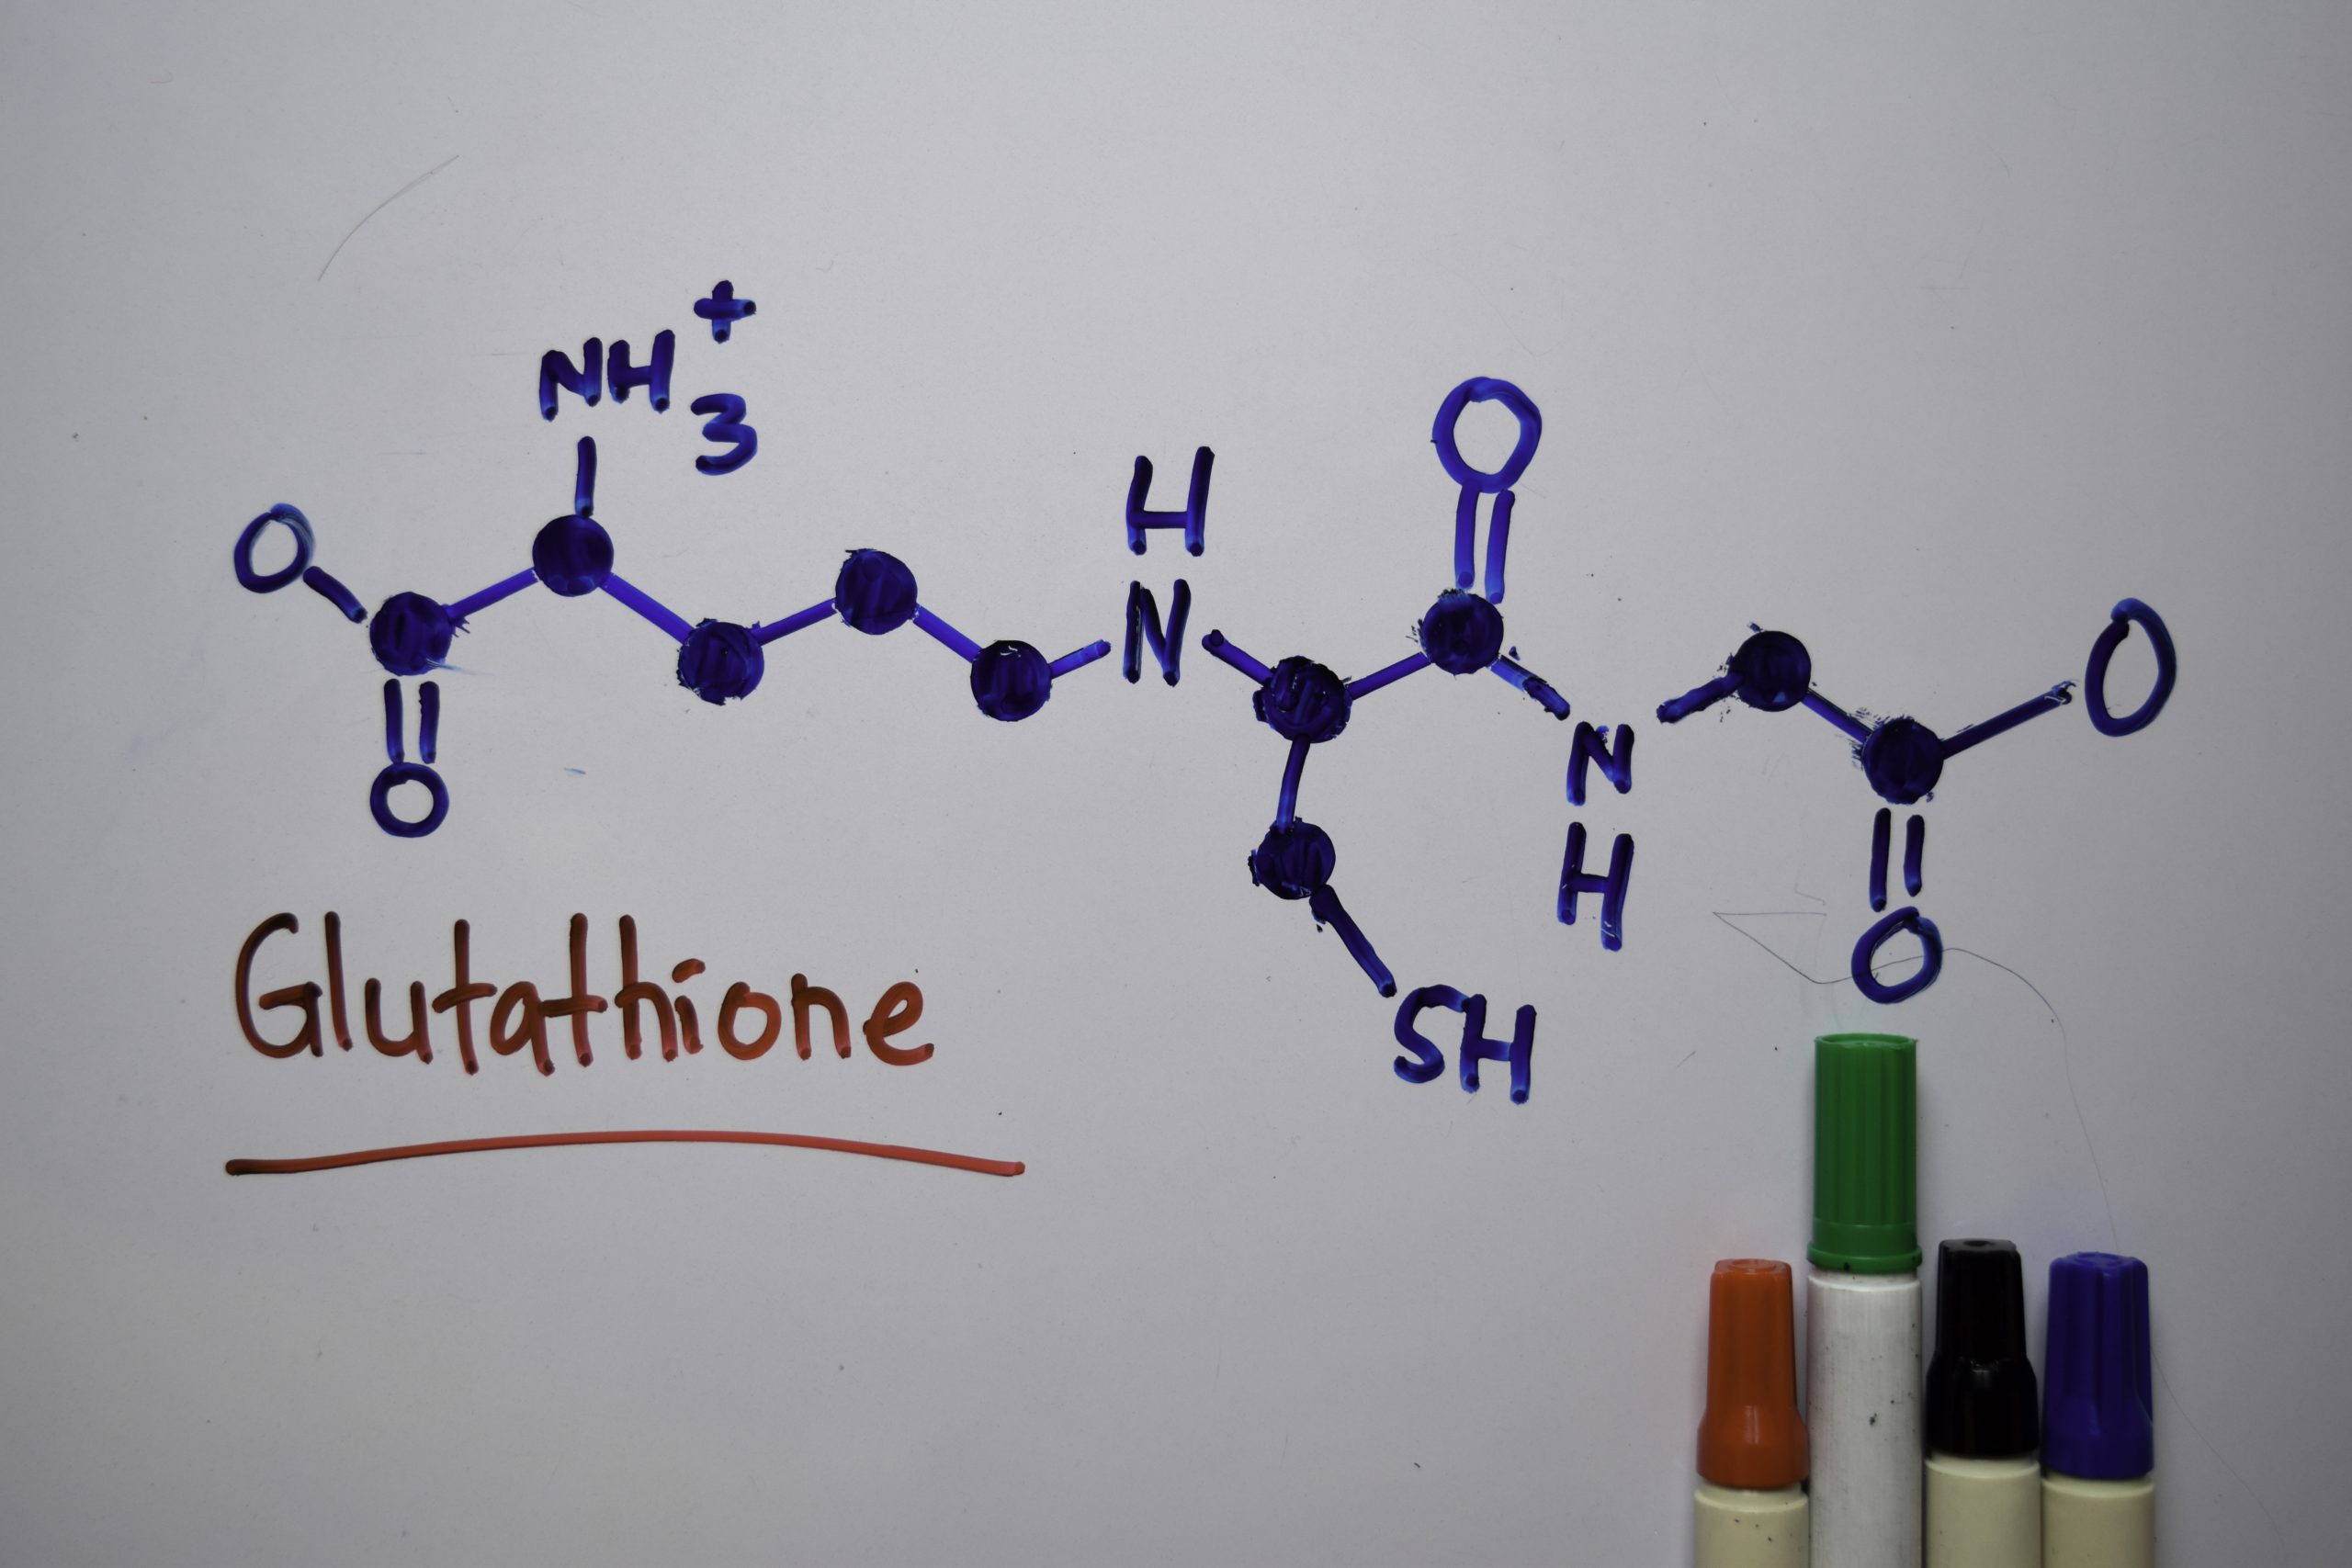 Glutathione – A Simple Way To Boost Our Immune System